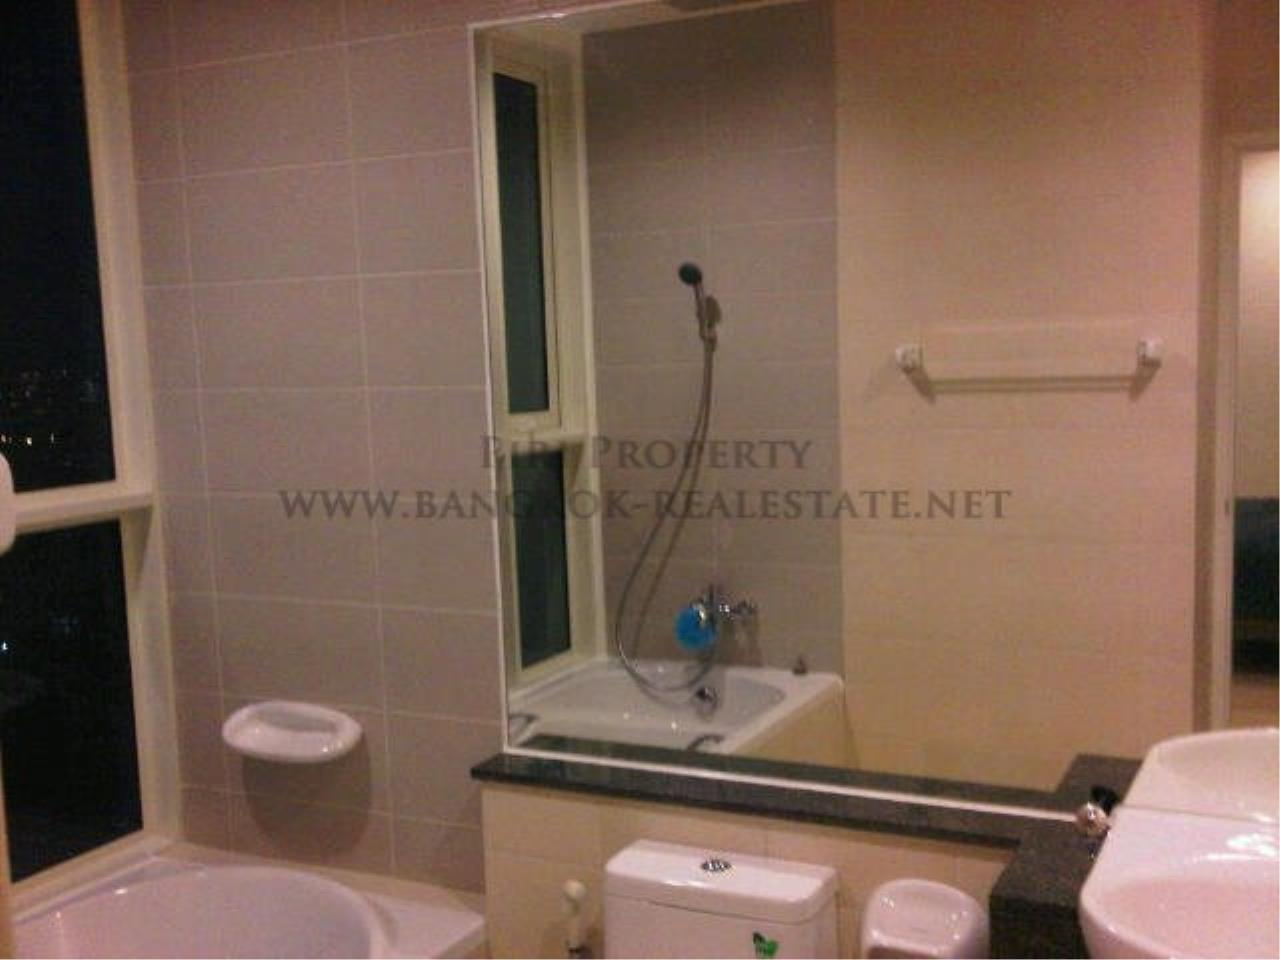 Piri Property Agency's 2 Bedroom Condo in the Lighthouse Condominium for sale - 27th Floor 4